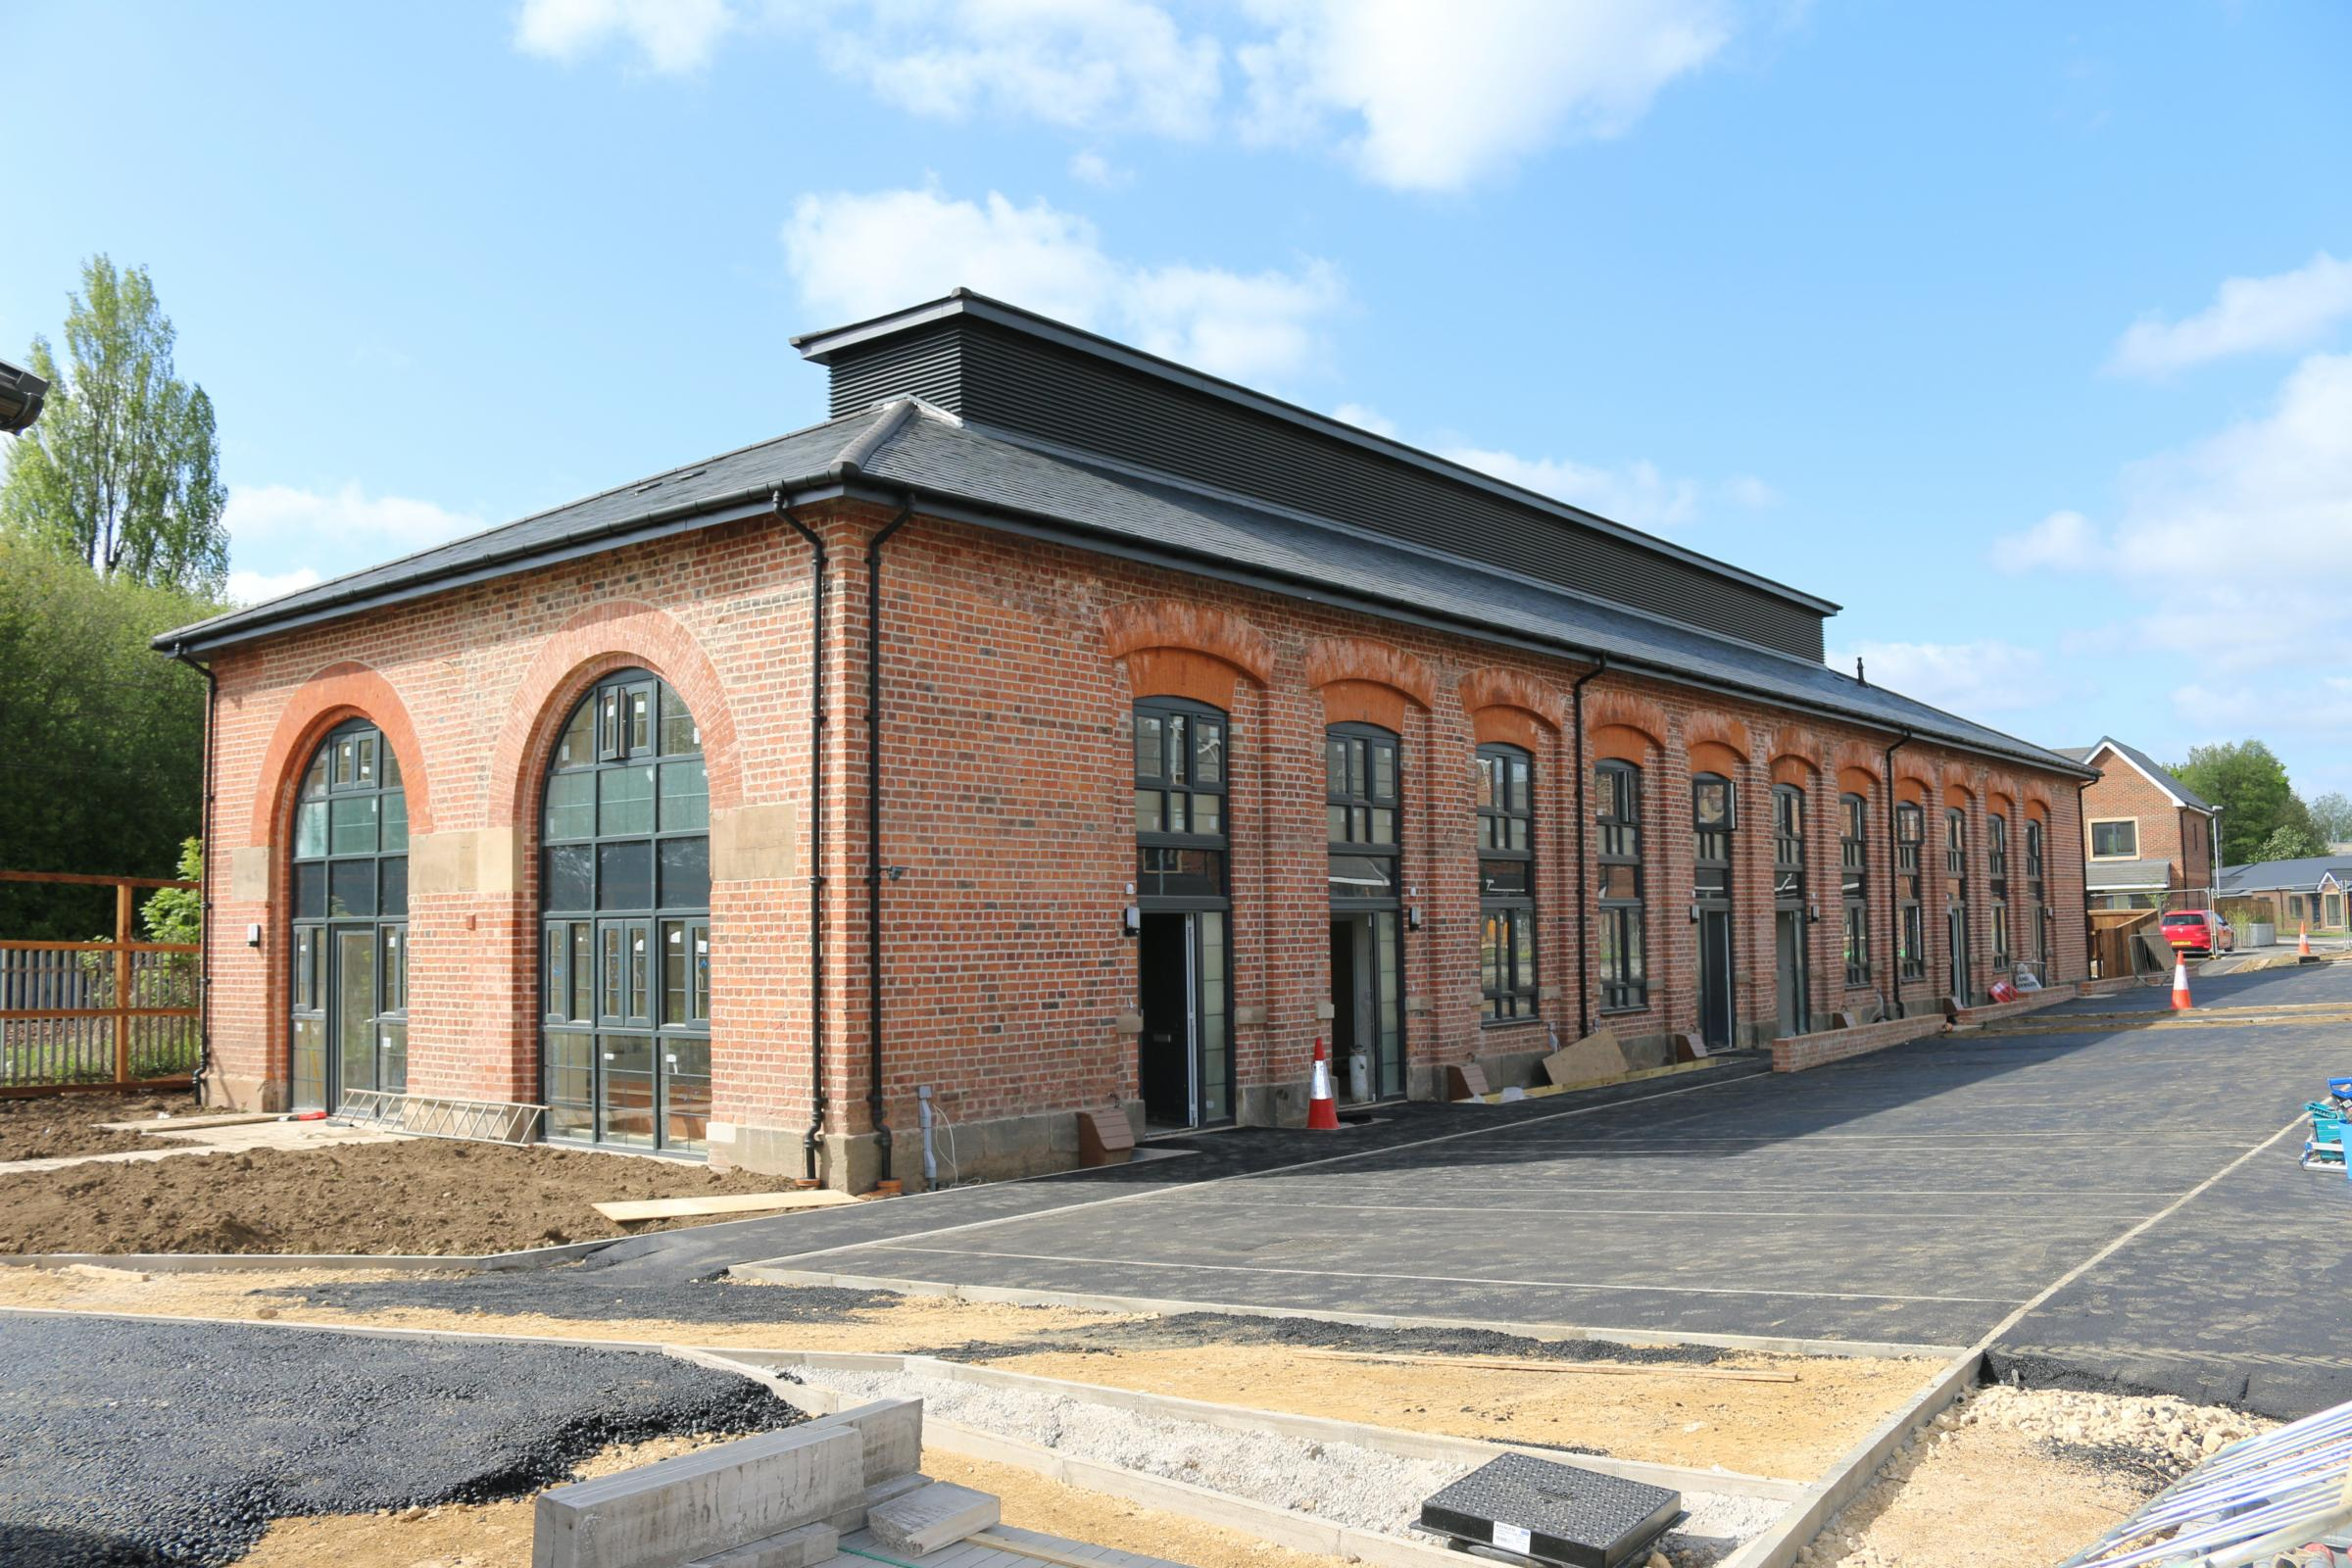 SOCIAL HOUSING: The restored Haughton Road engine shed, as seen this week, as it nears the end of its conversion. The housing on top of the roof is a clerestory - a ventilator that let the steam and smoke from the engines escape